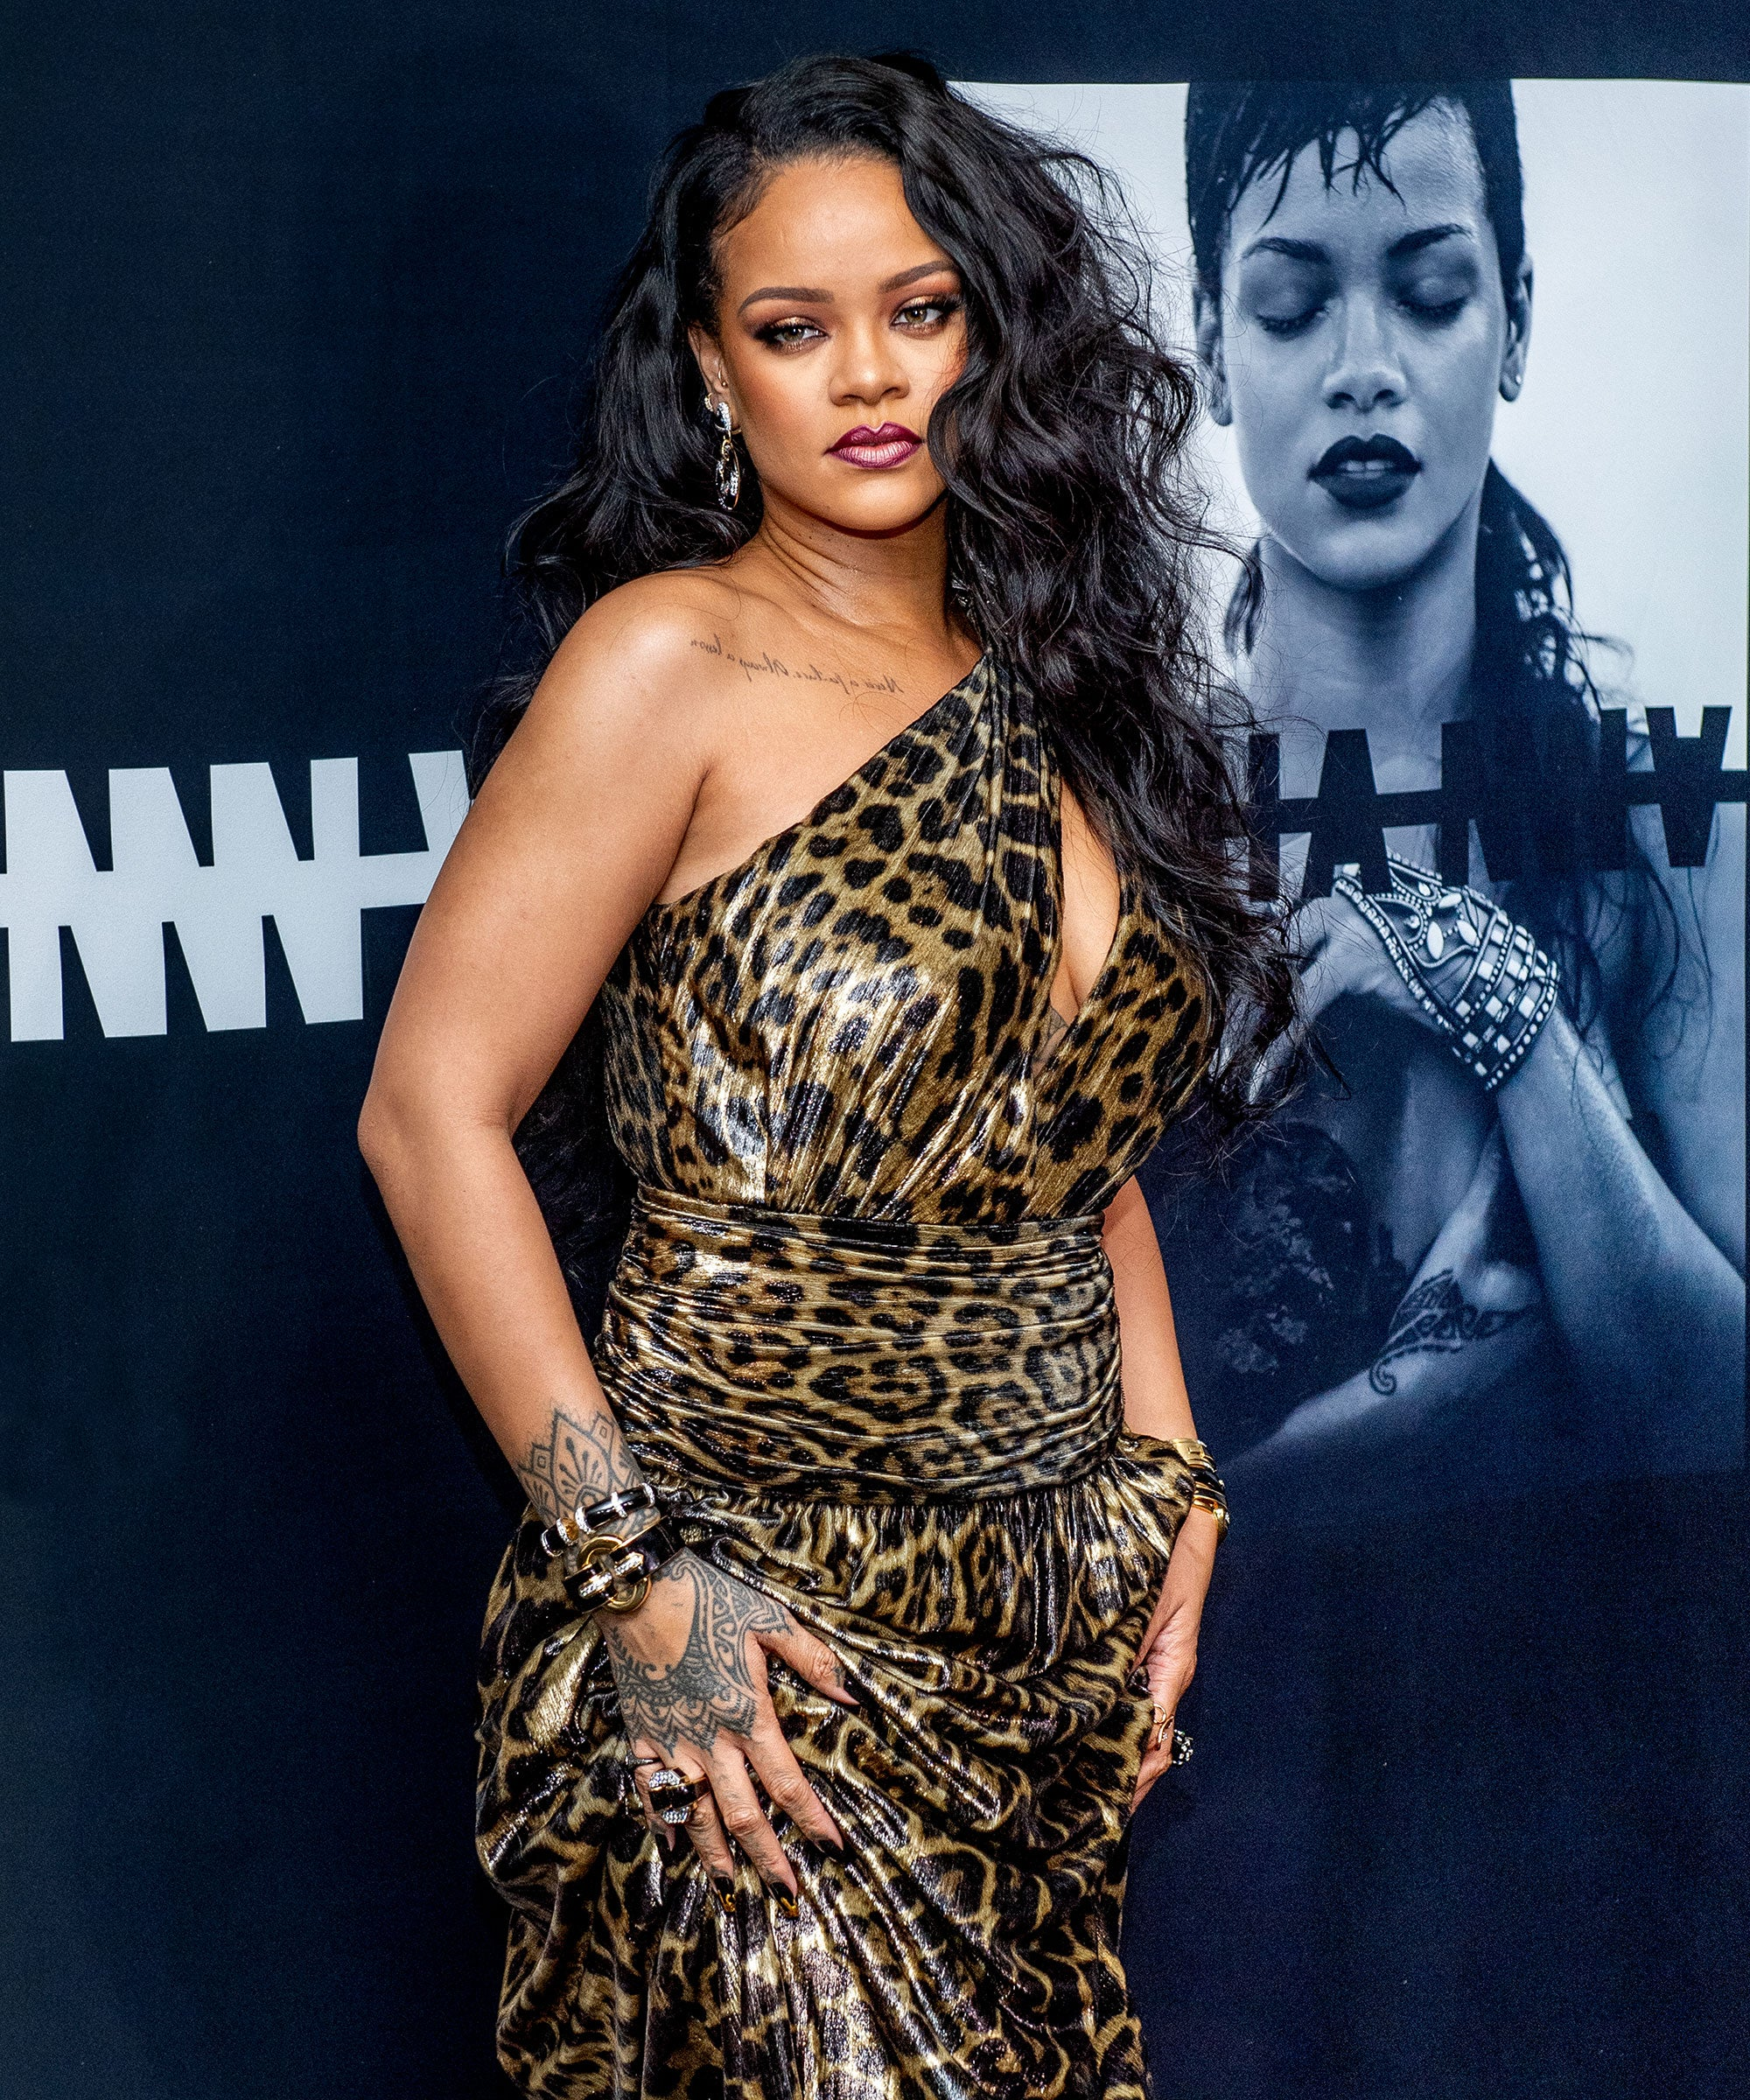 Rihanna Didn't Drop A New Album Yet, But She Does Have A Brand New Project